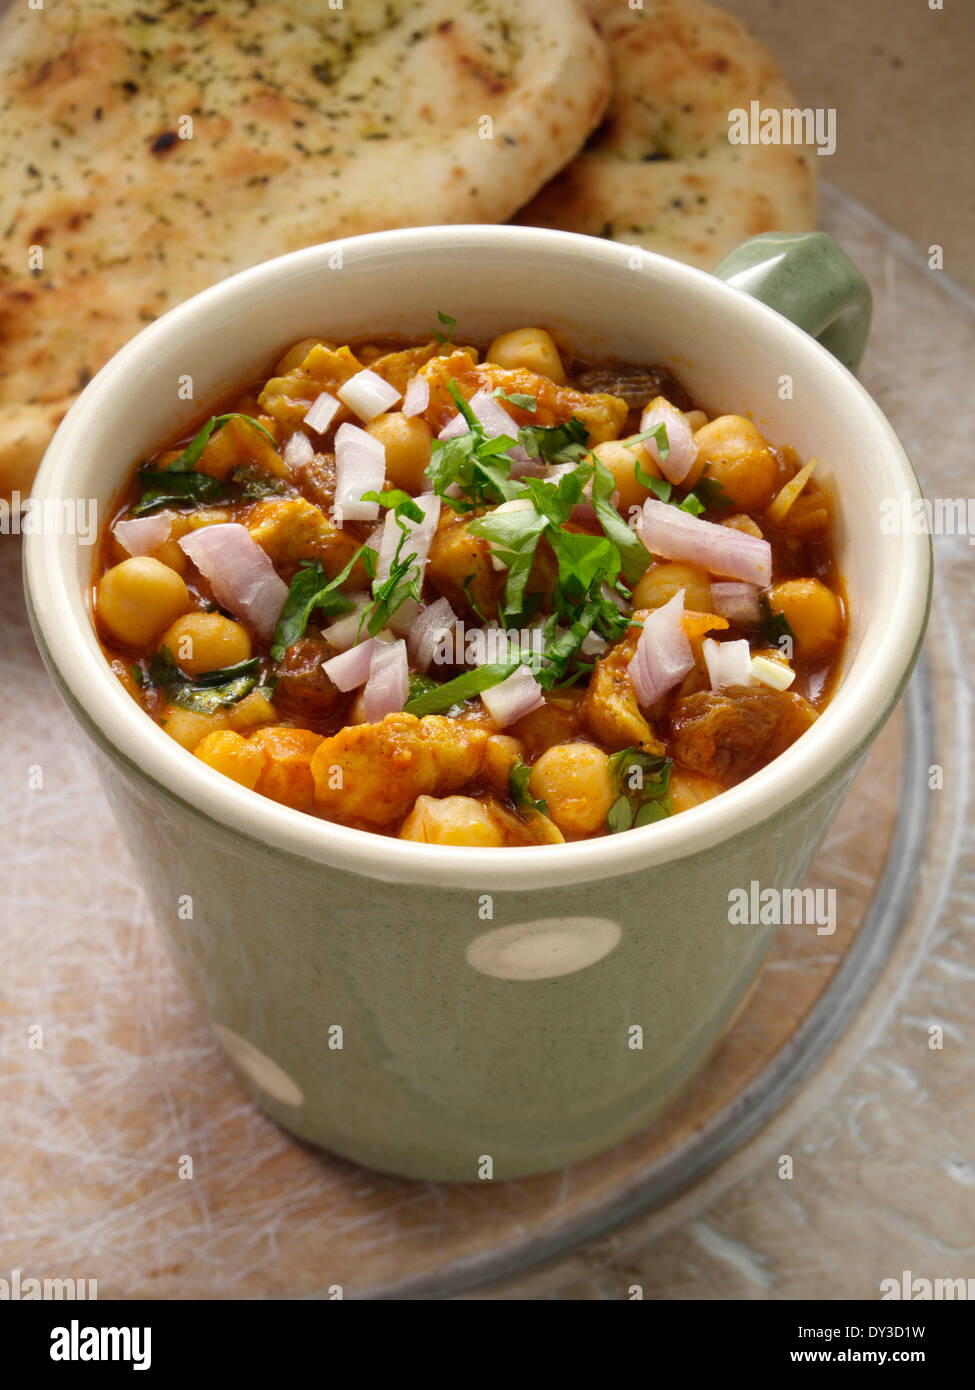 Chicken curry microwaved in a mug - Stock Image